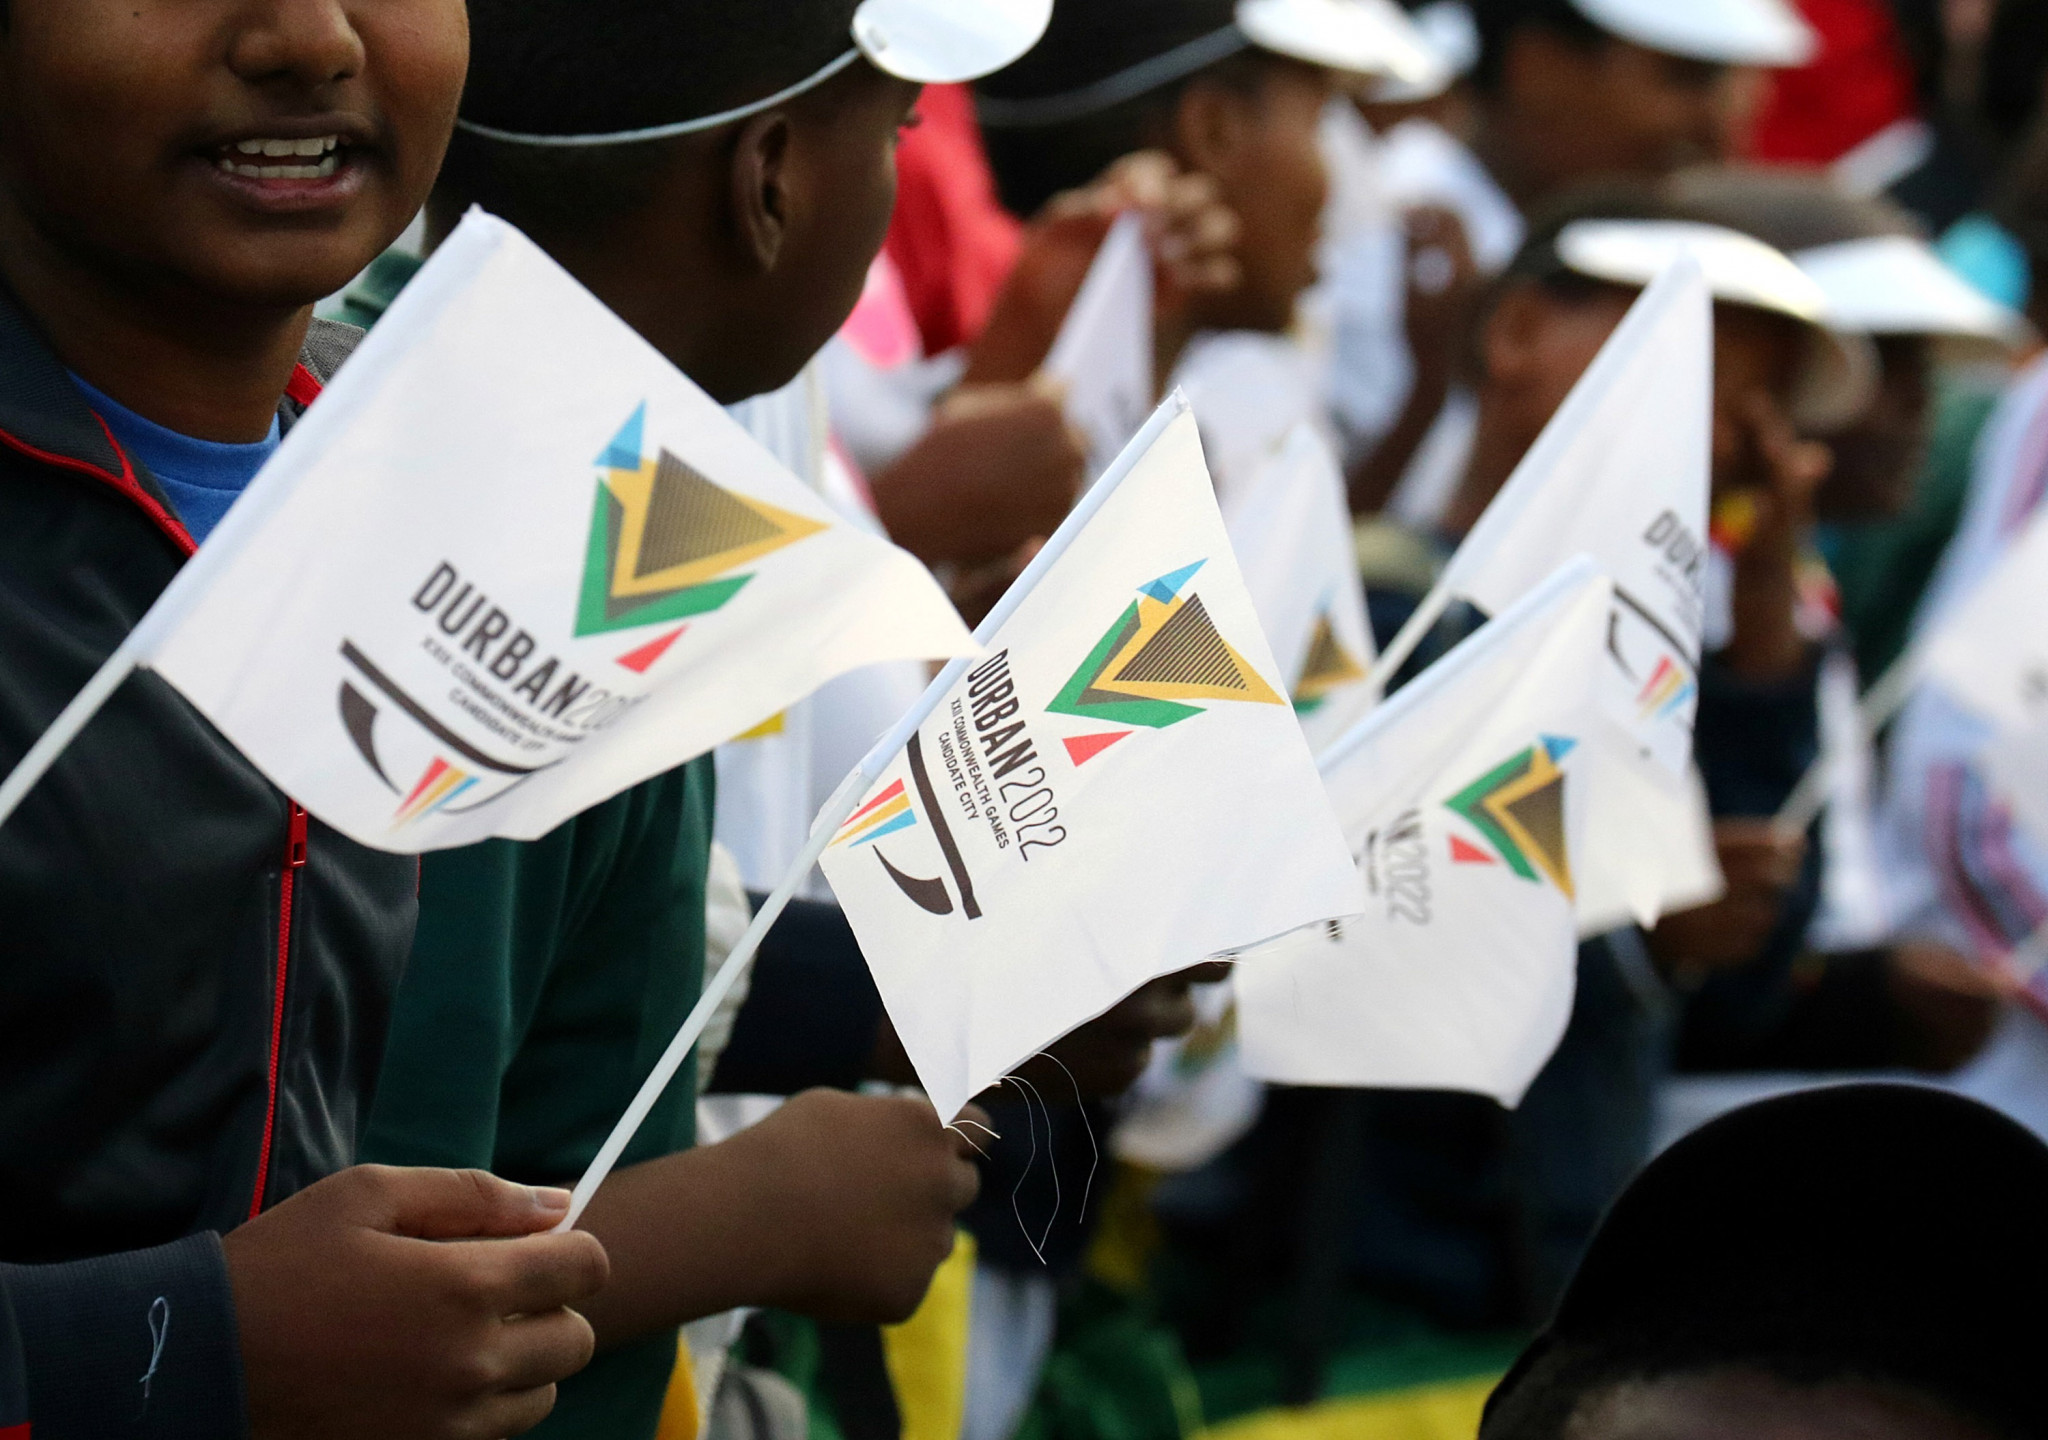 Durban had initially been awarded the 2022 Commonwealth Games but failed to deliver on bid commitments ©Getty Images